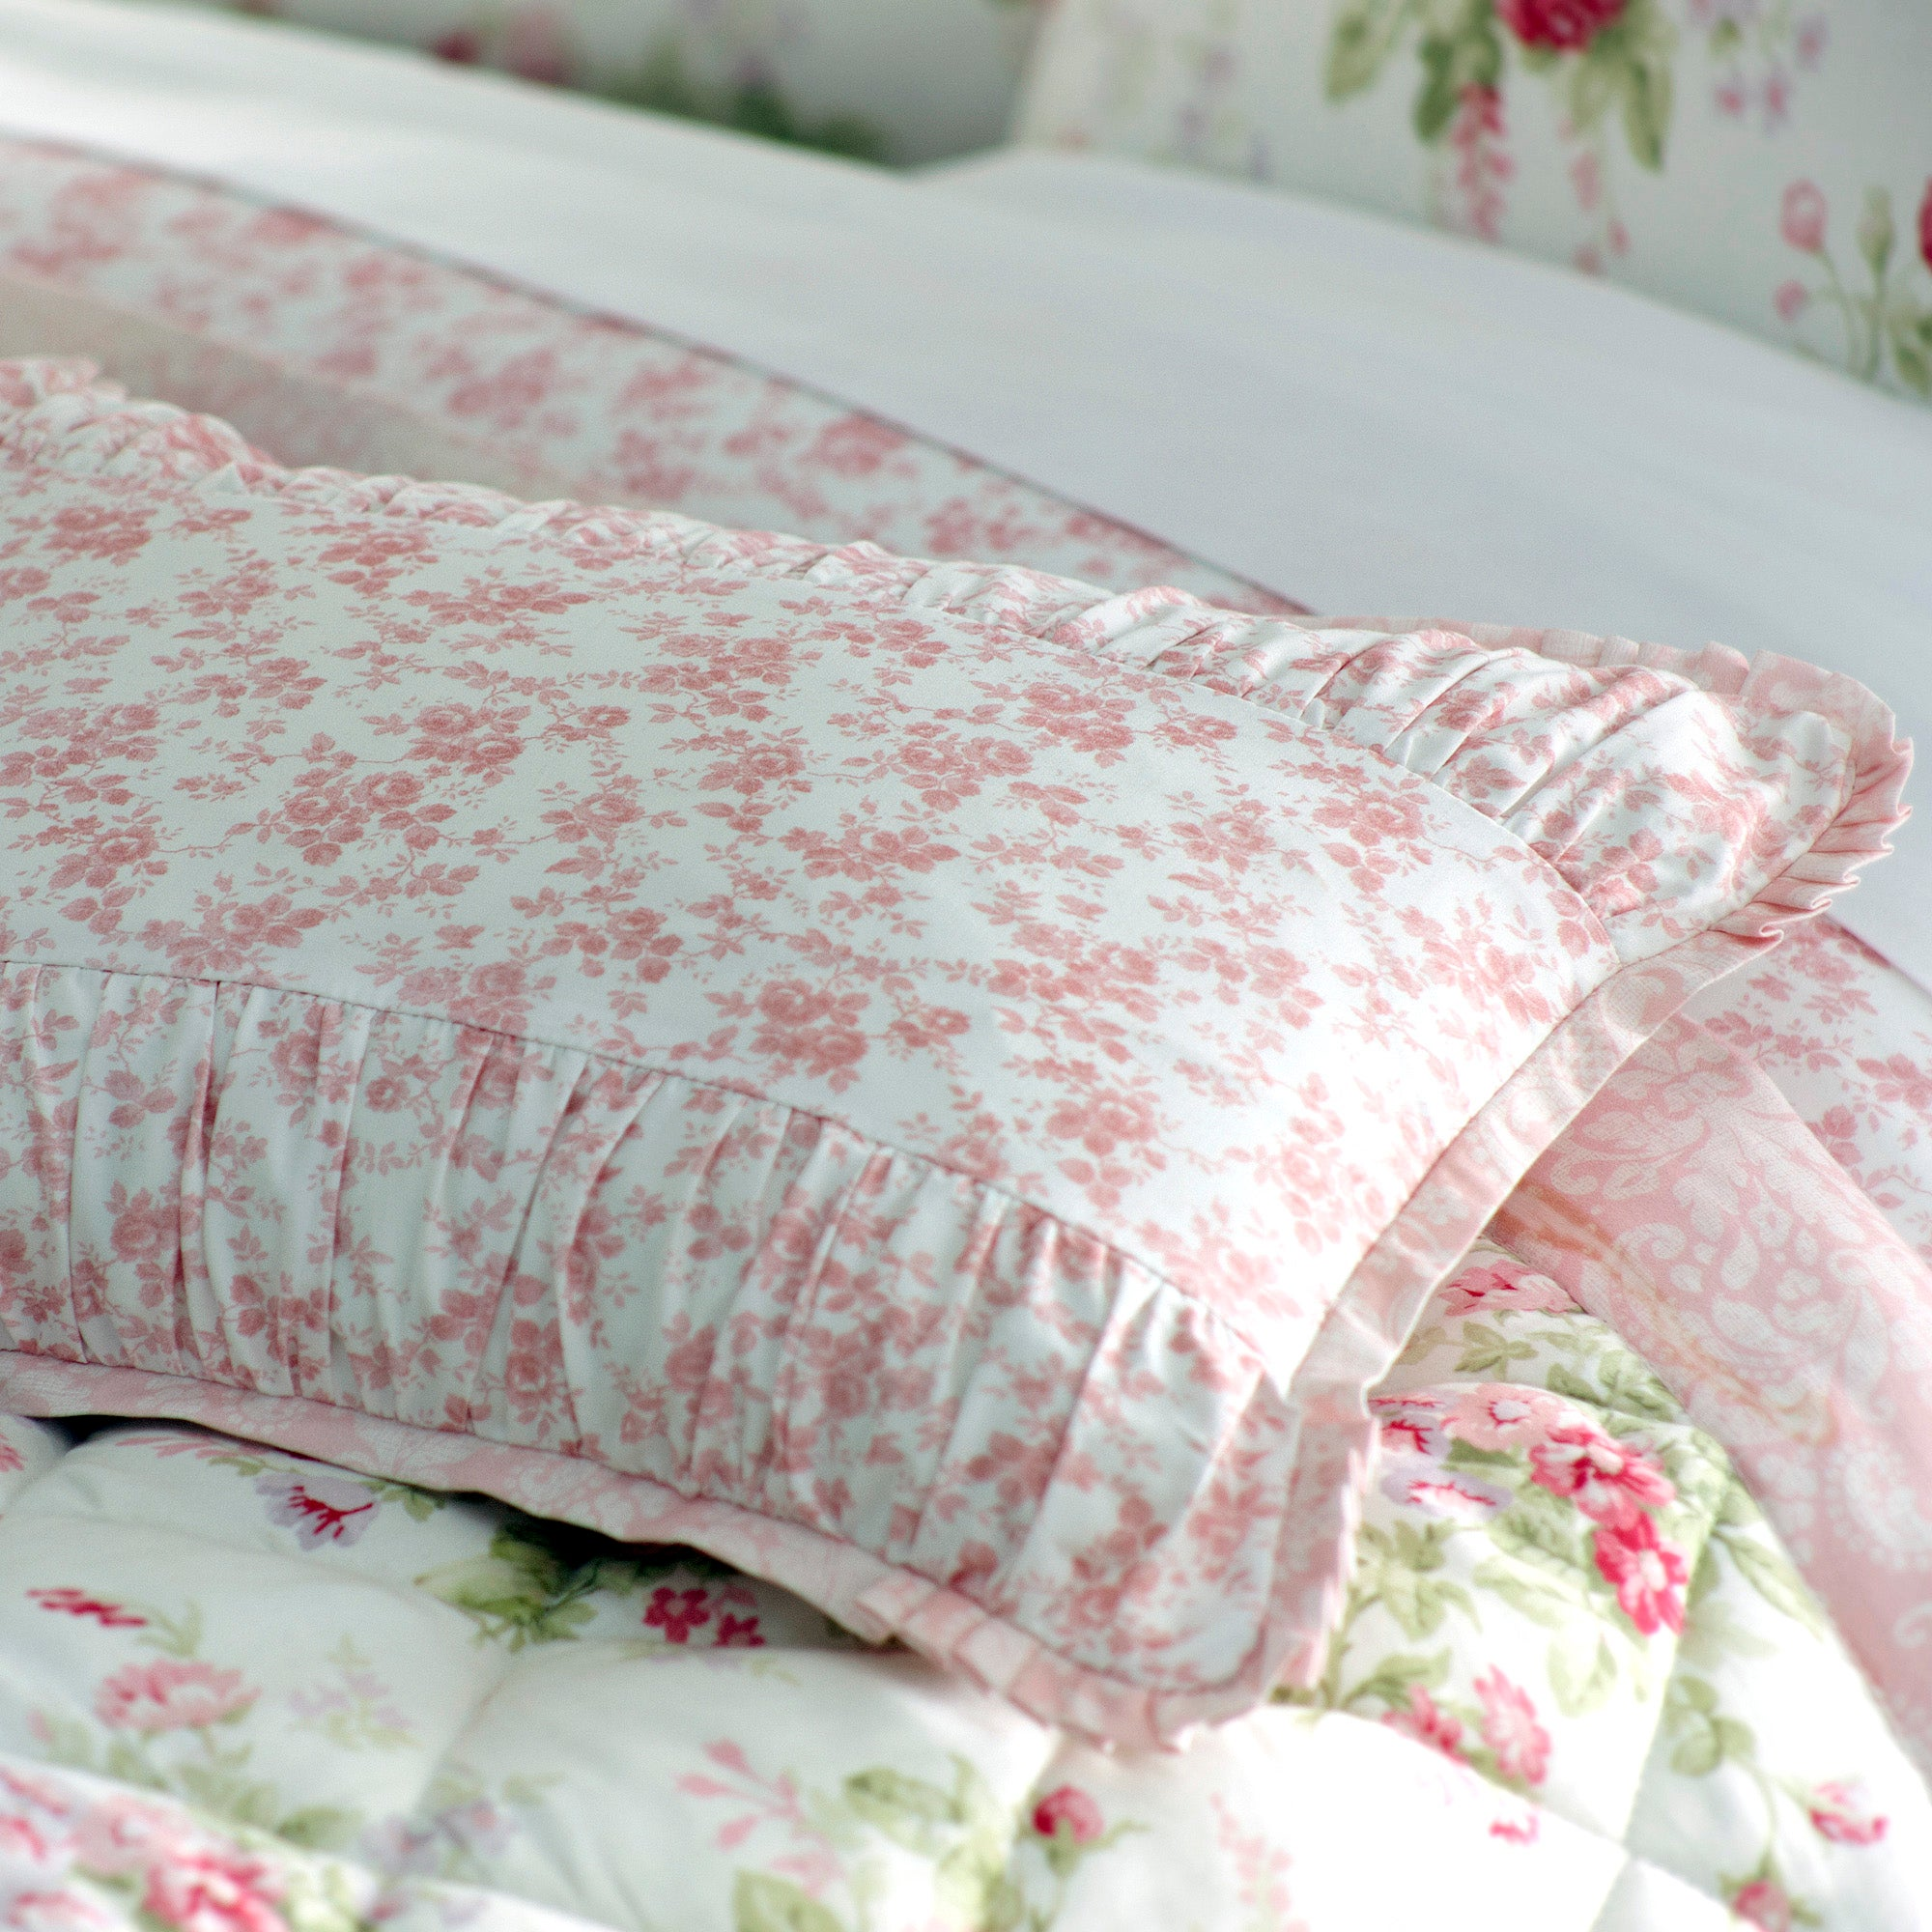 Dorma Pink Elsie Collection Boudoir Cushion Cover